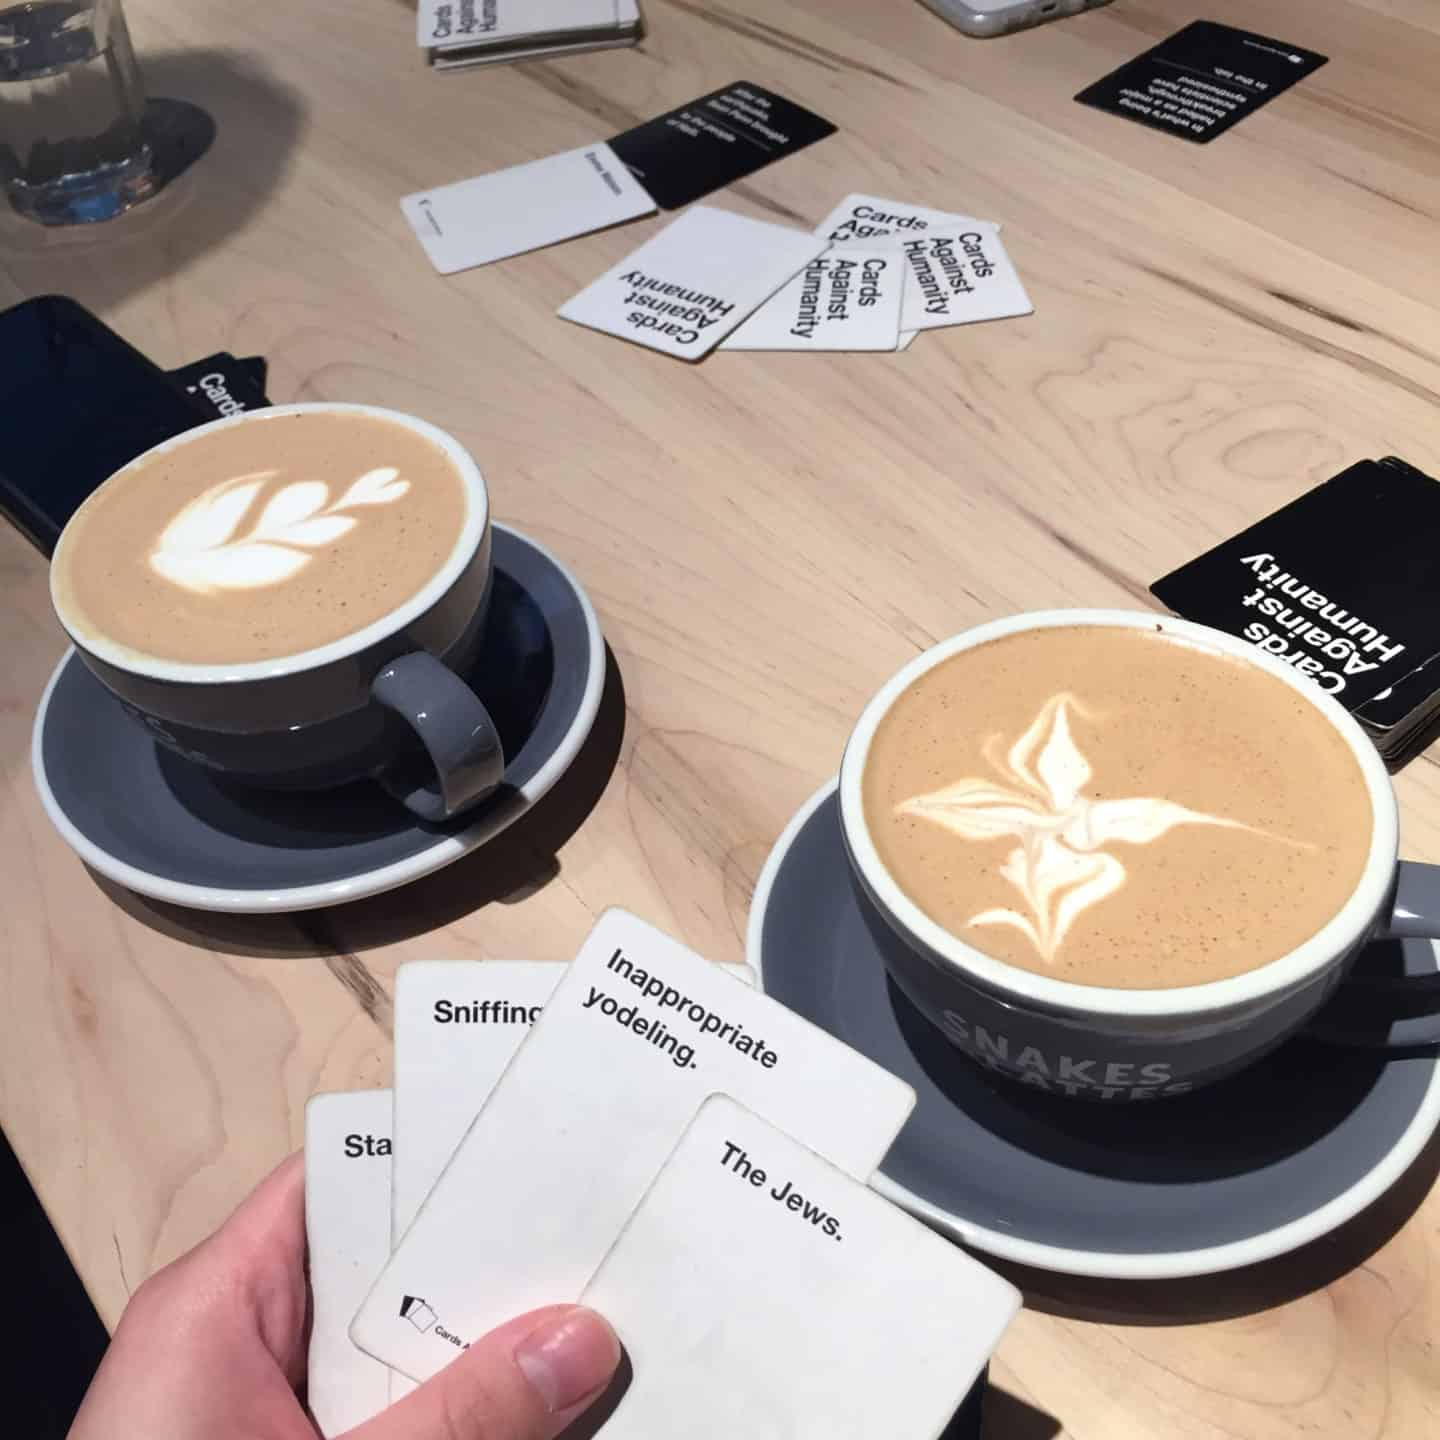 All-you-can-play board games at Snakes and Lattes in Toronto